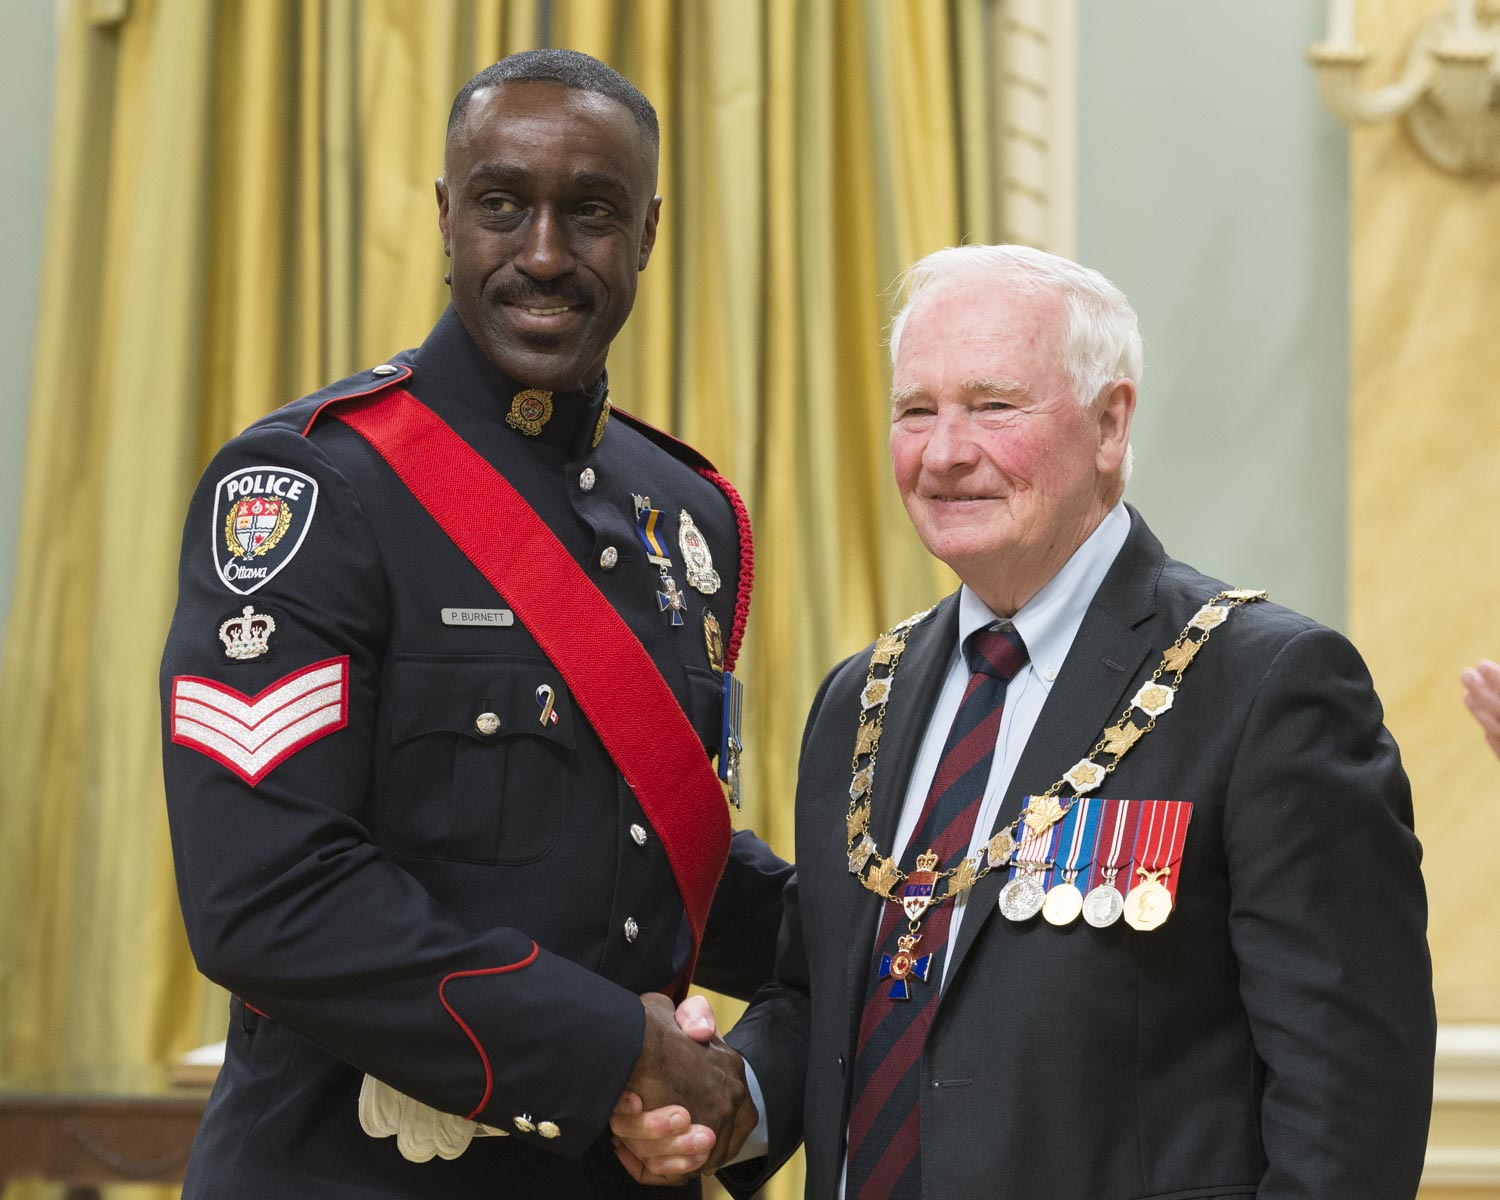 His Excellency presented the Order at the Member level to Staff Sergeant Paul Alexander Burnett, M.O.M., of the Ottawa Police Service, Ontario.